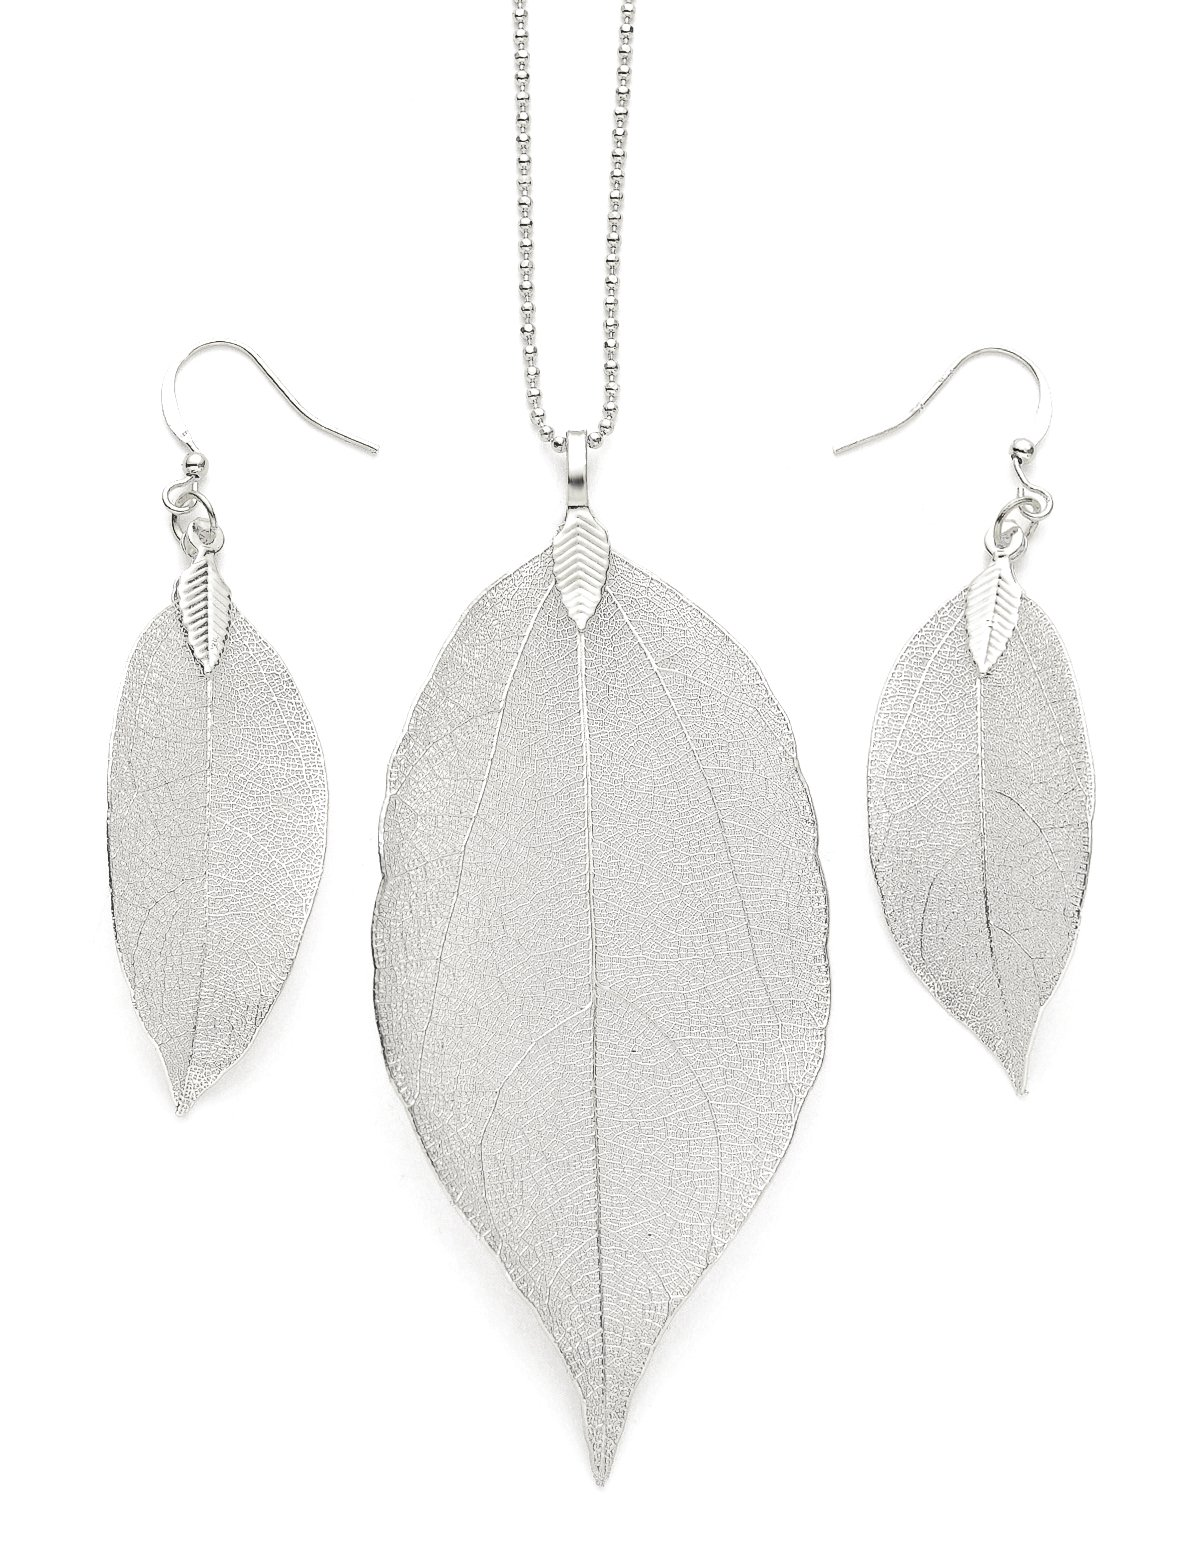 Cloris Tautou Jewelry Necklace Women Long Chain For Pendant Necklace Silver White Gold Pure Natural Leaf Bohemian Boho Necklace Fashion Gifts Birthday Gifts for Women for Her